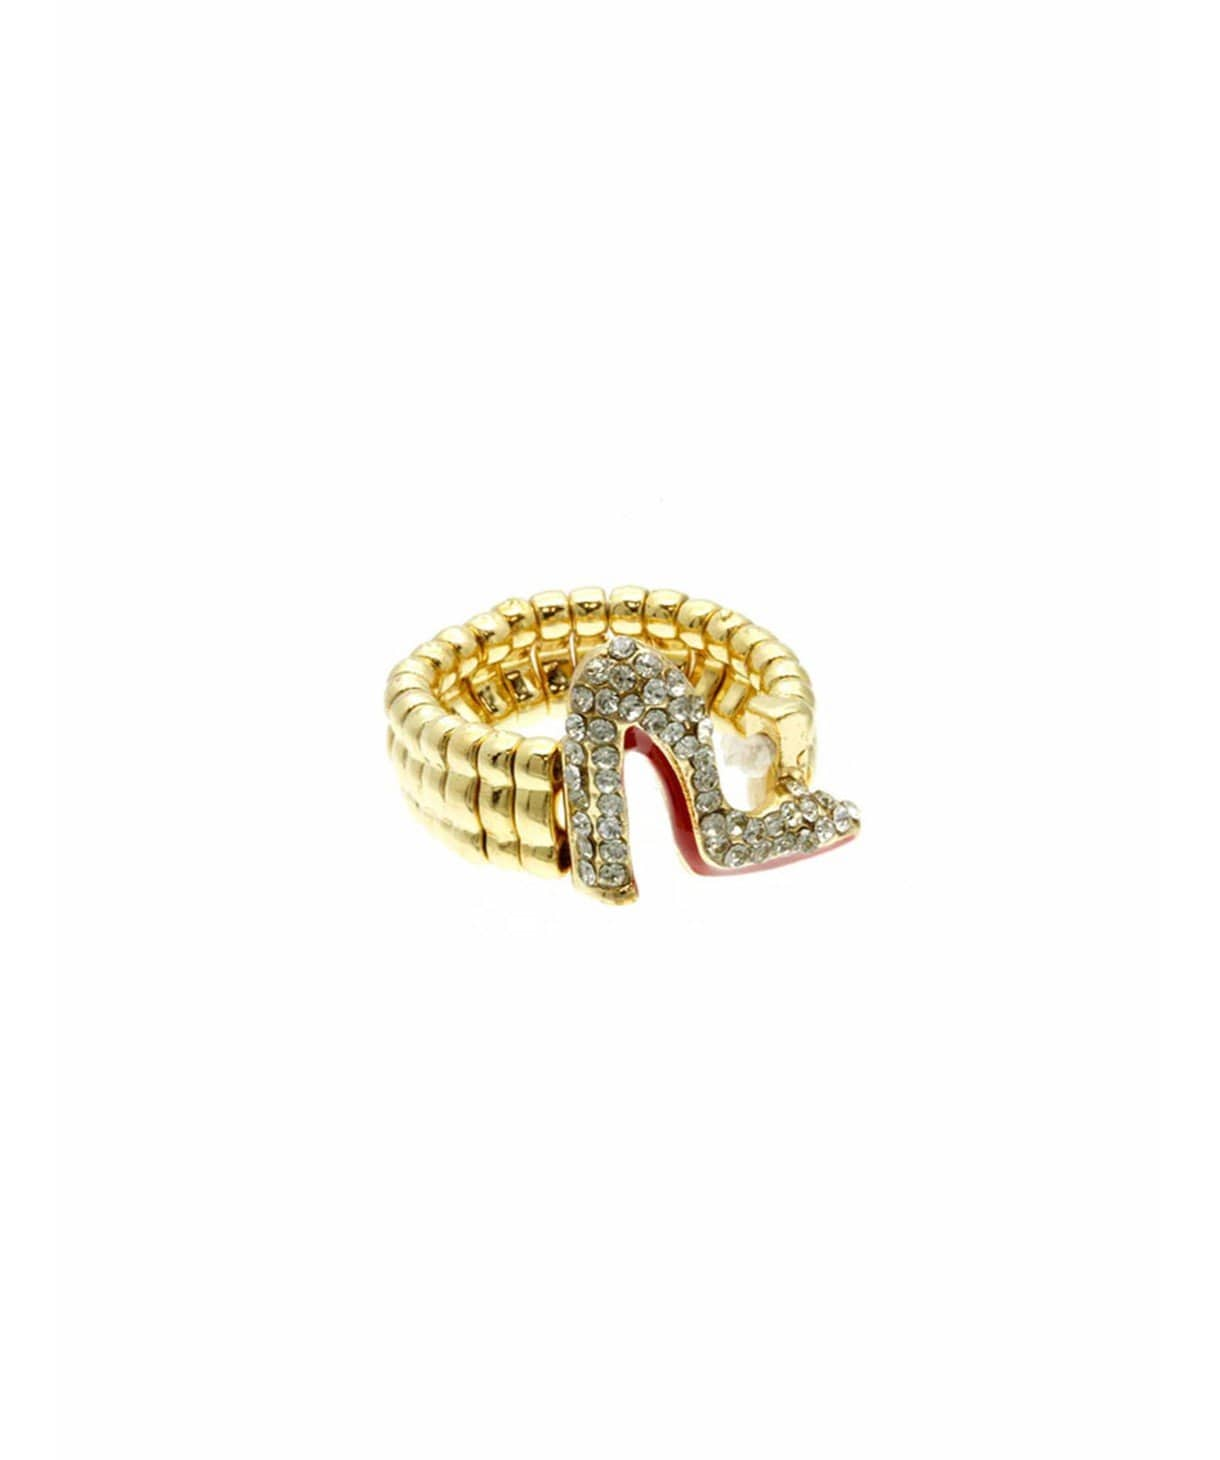 Glam Shoe Ring - Uptownie